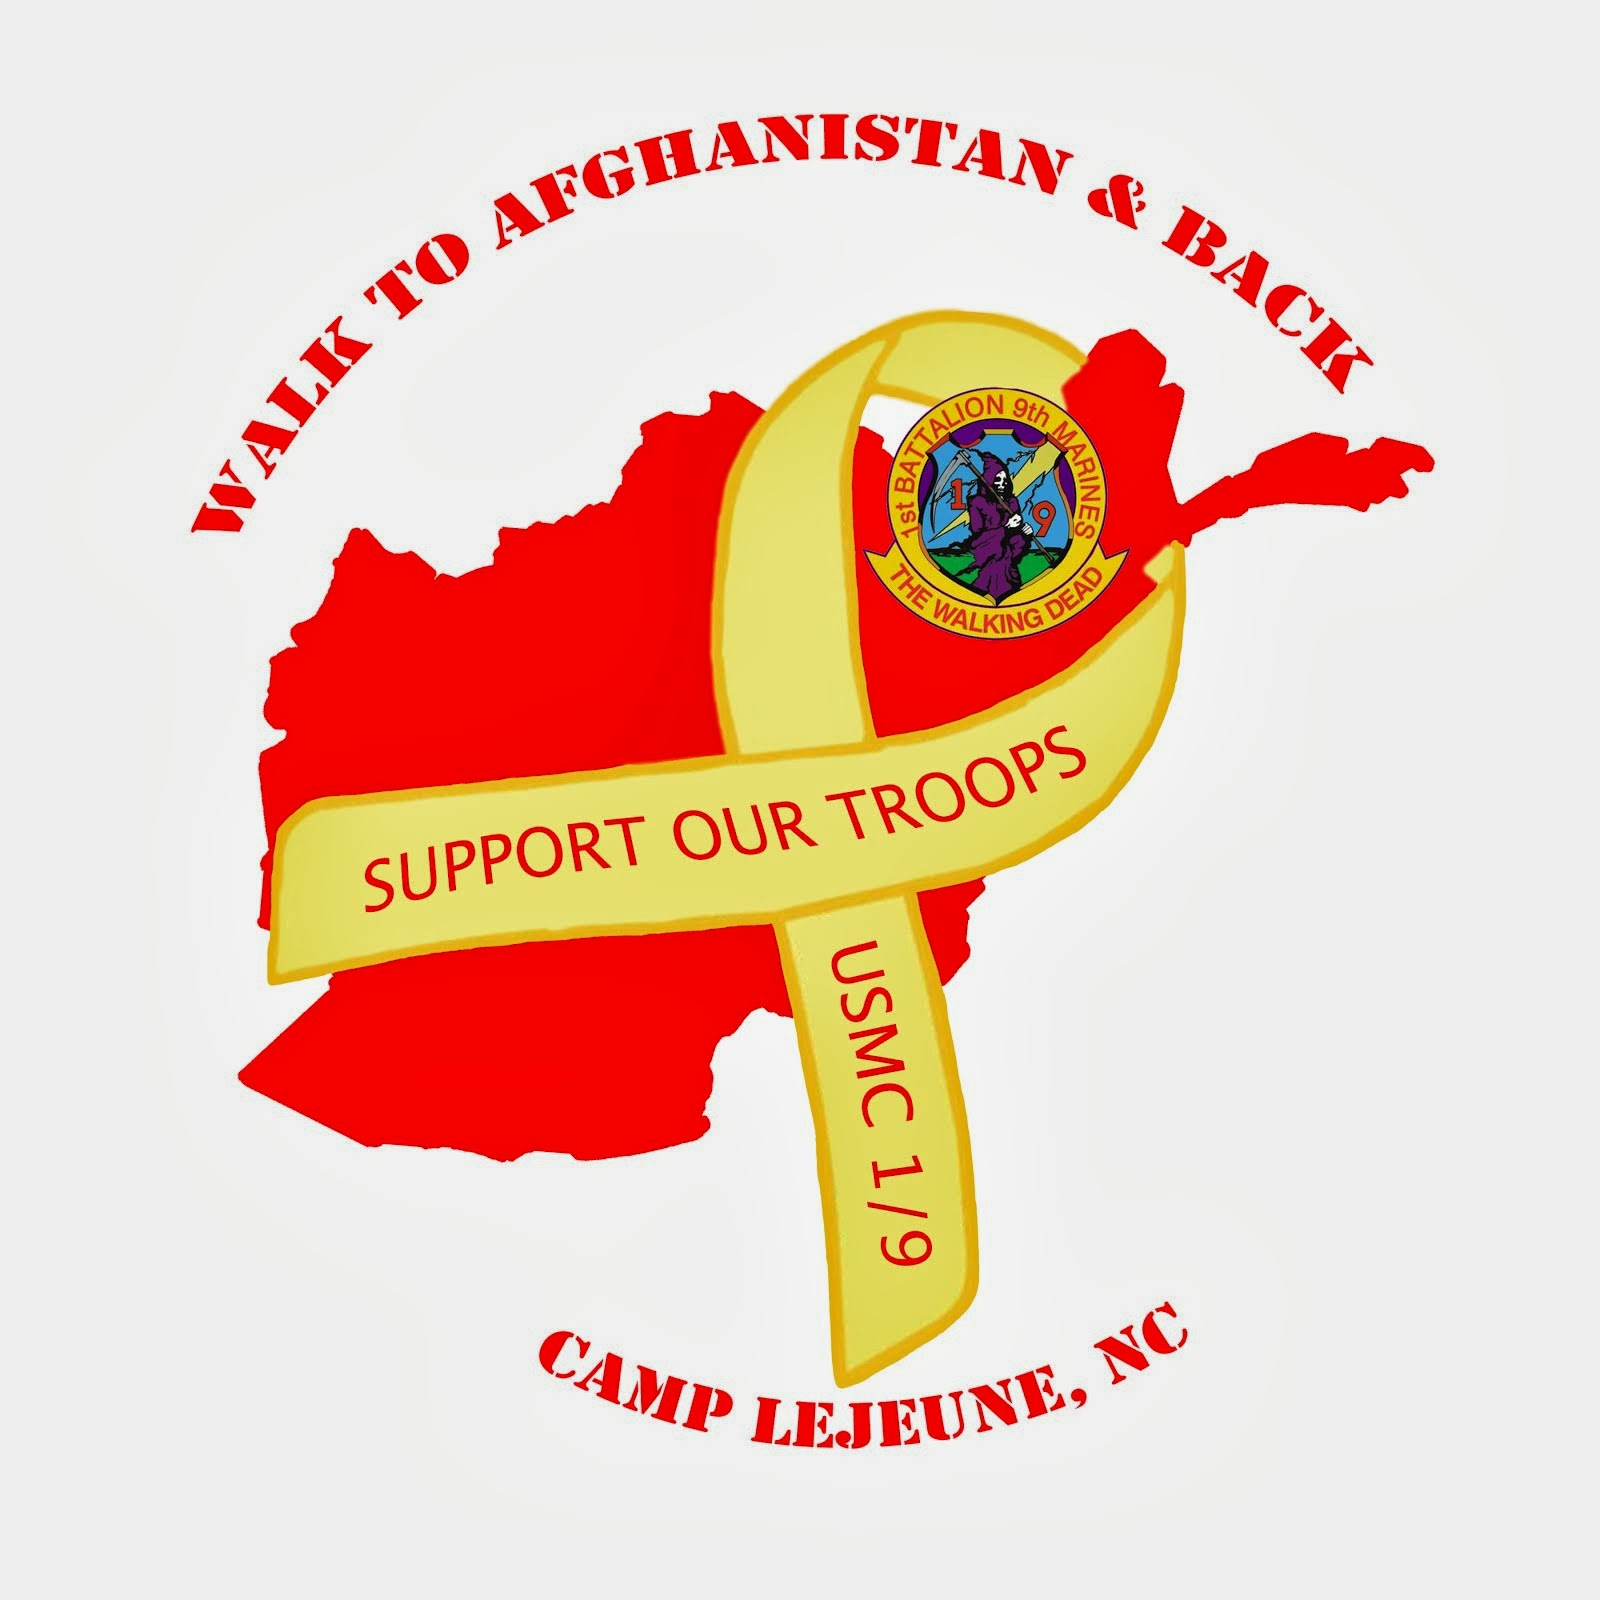 Walk to Afghanistan